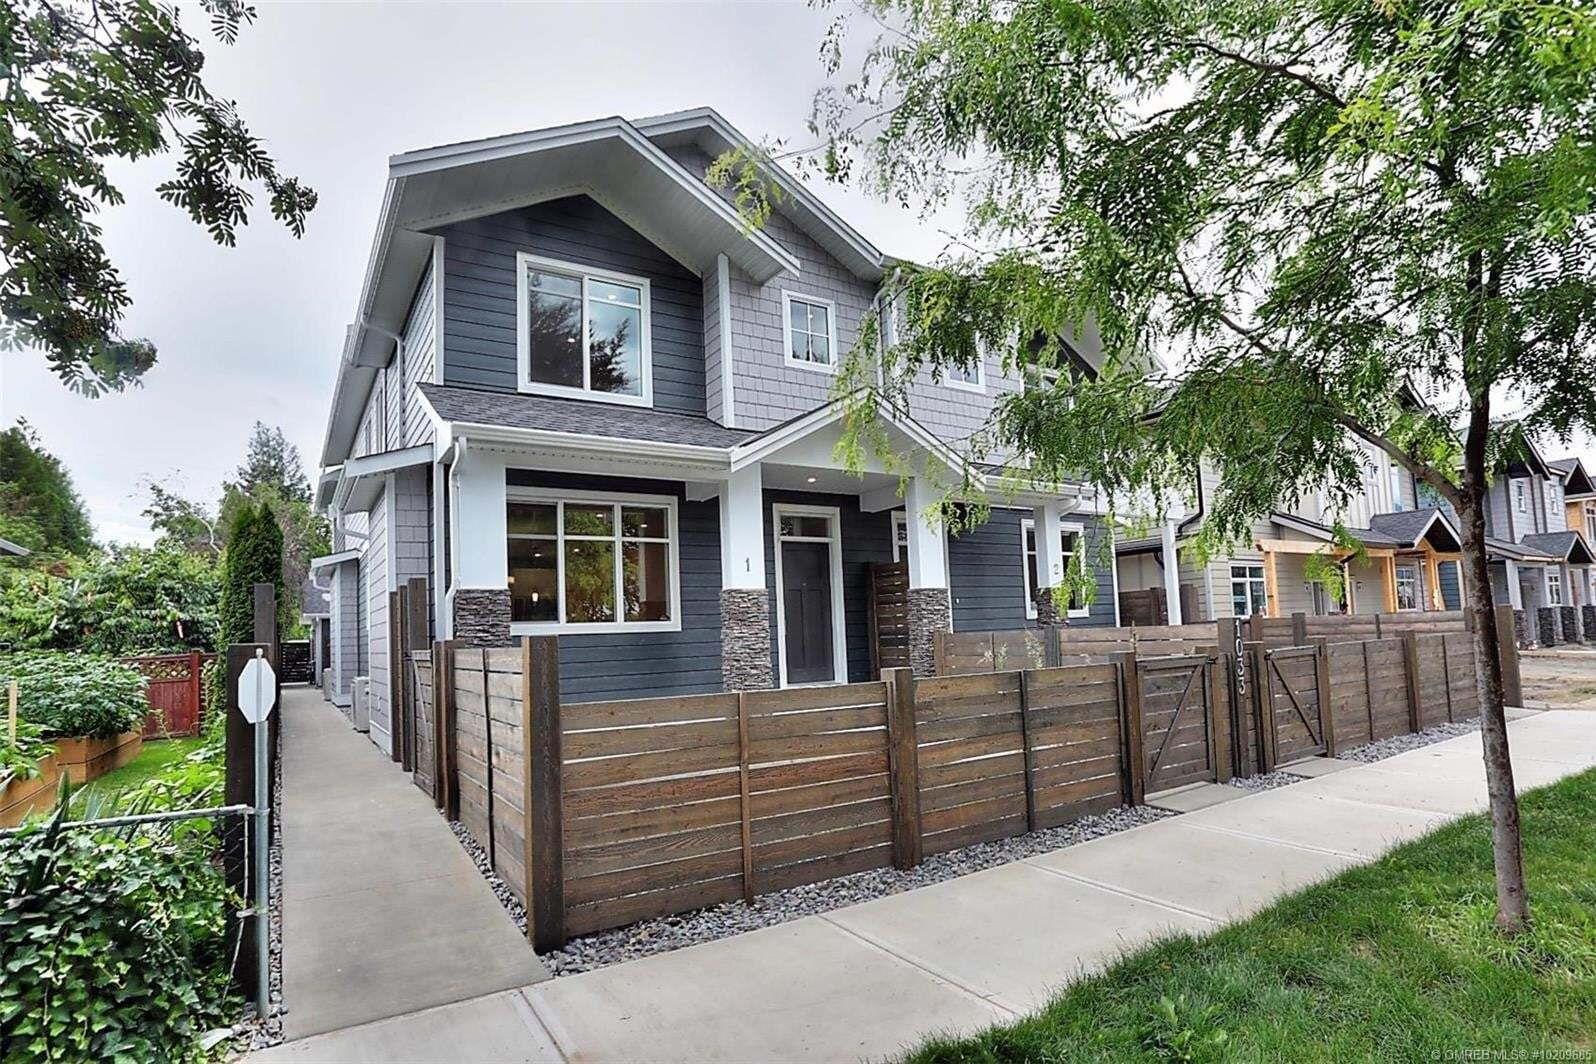 Townhouse for sale at 1033 Stockwell Ave Kelowna British Columbia - MLS: 10209685